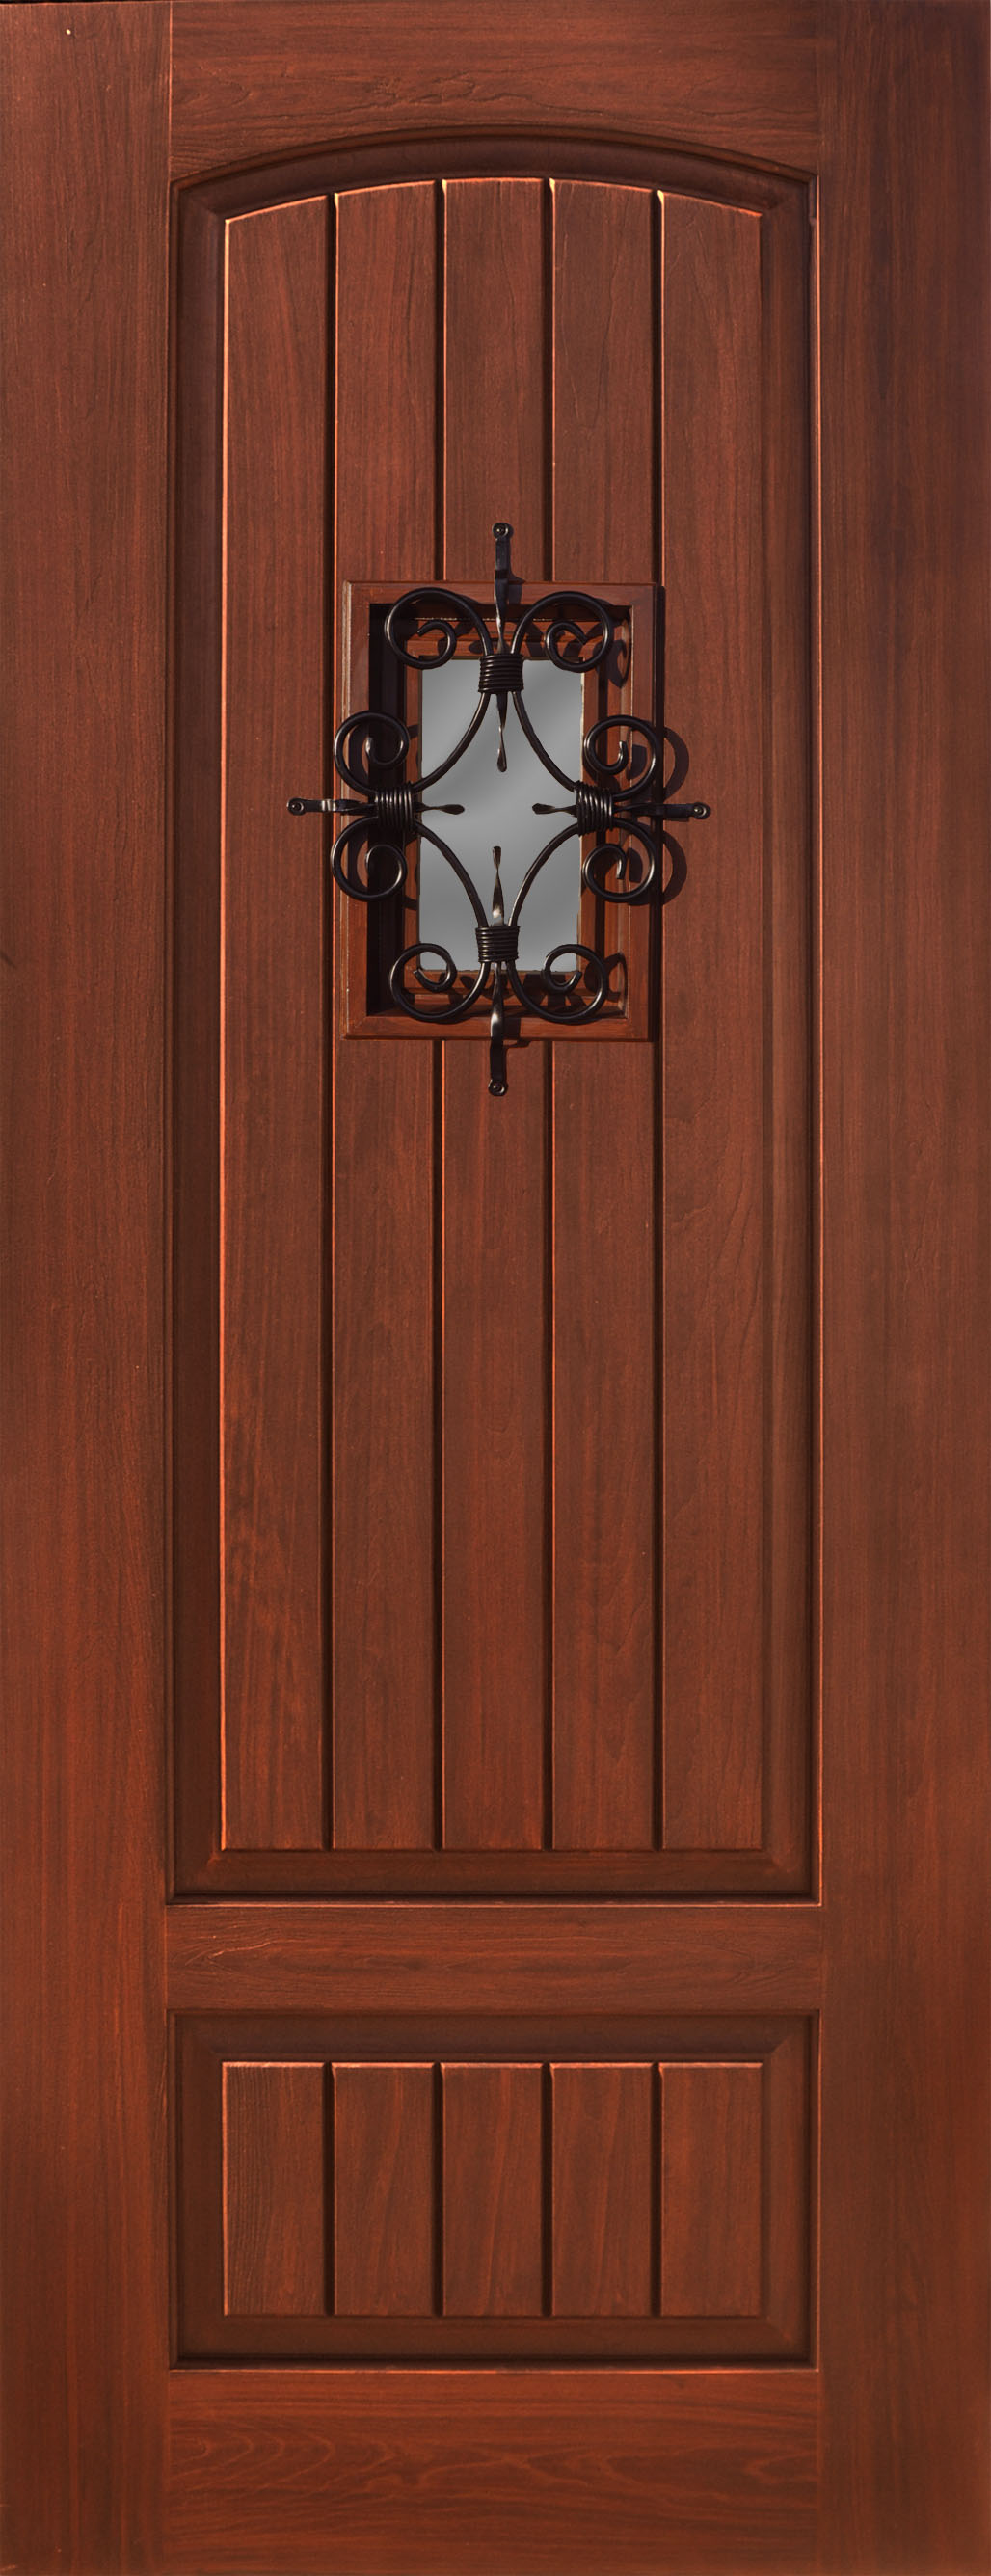 Fiberglass Estancia 2 panel V-groove Florentine Door & Fiberglass Estancia 2 panel V-groove Florentine Door u2013 The Front ...